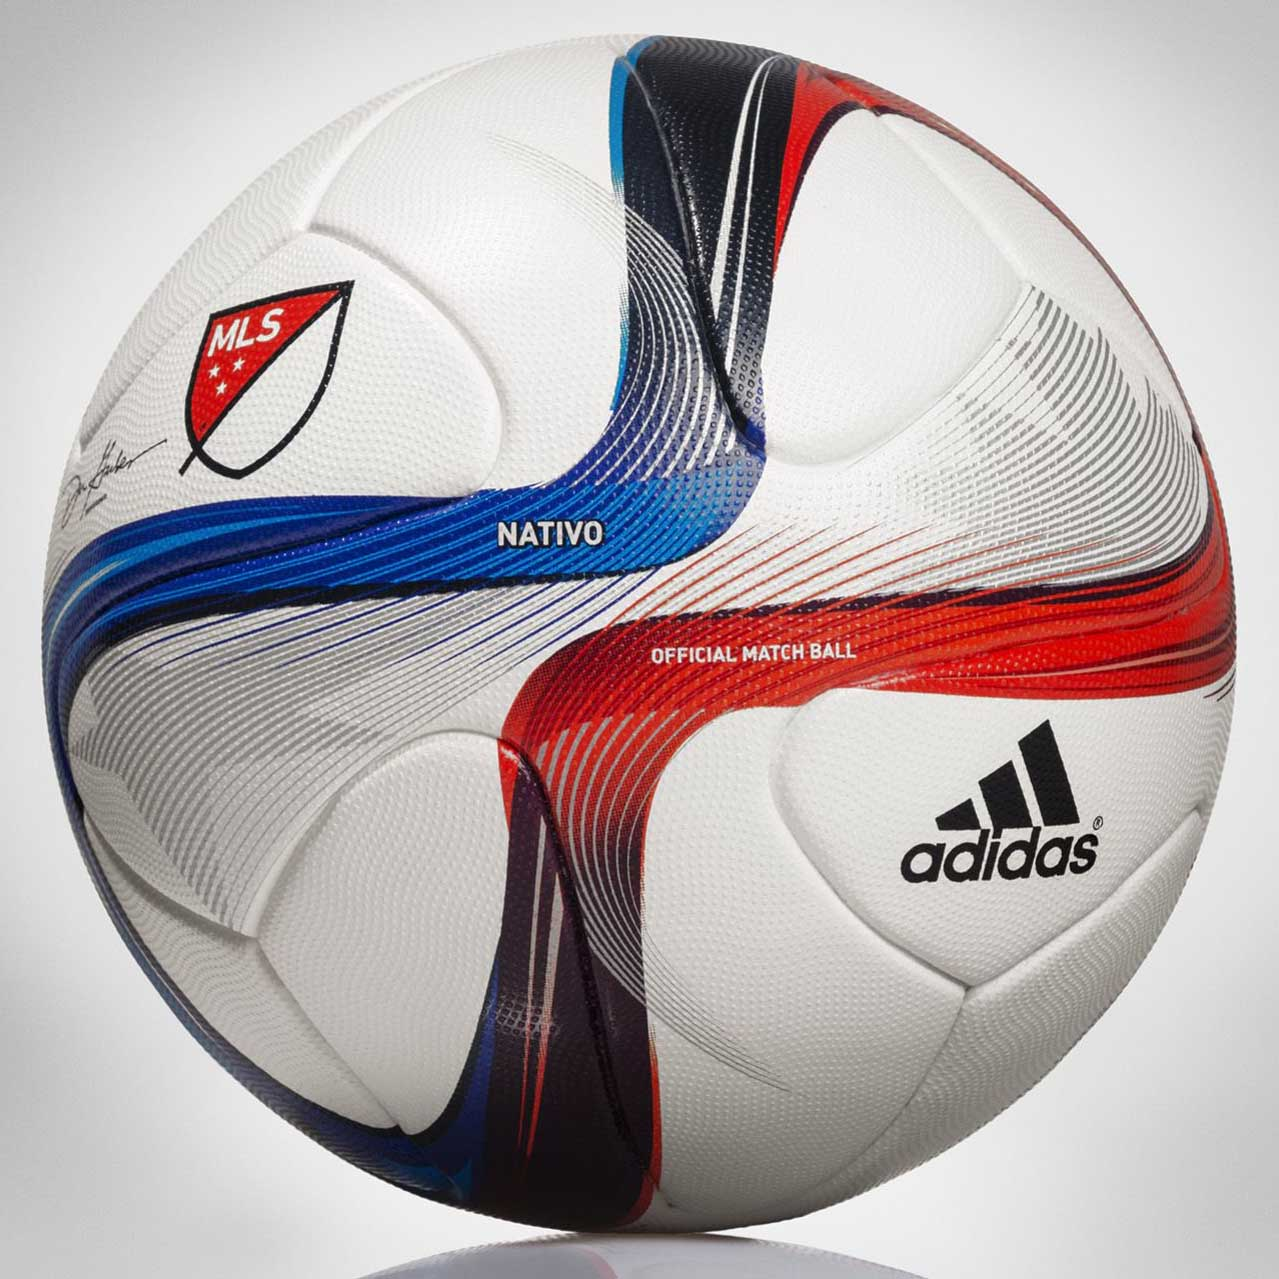 New Adidas Soccer Ball Design